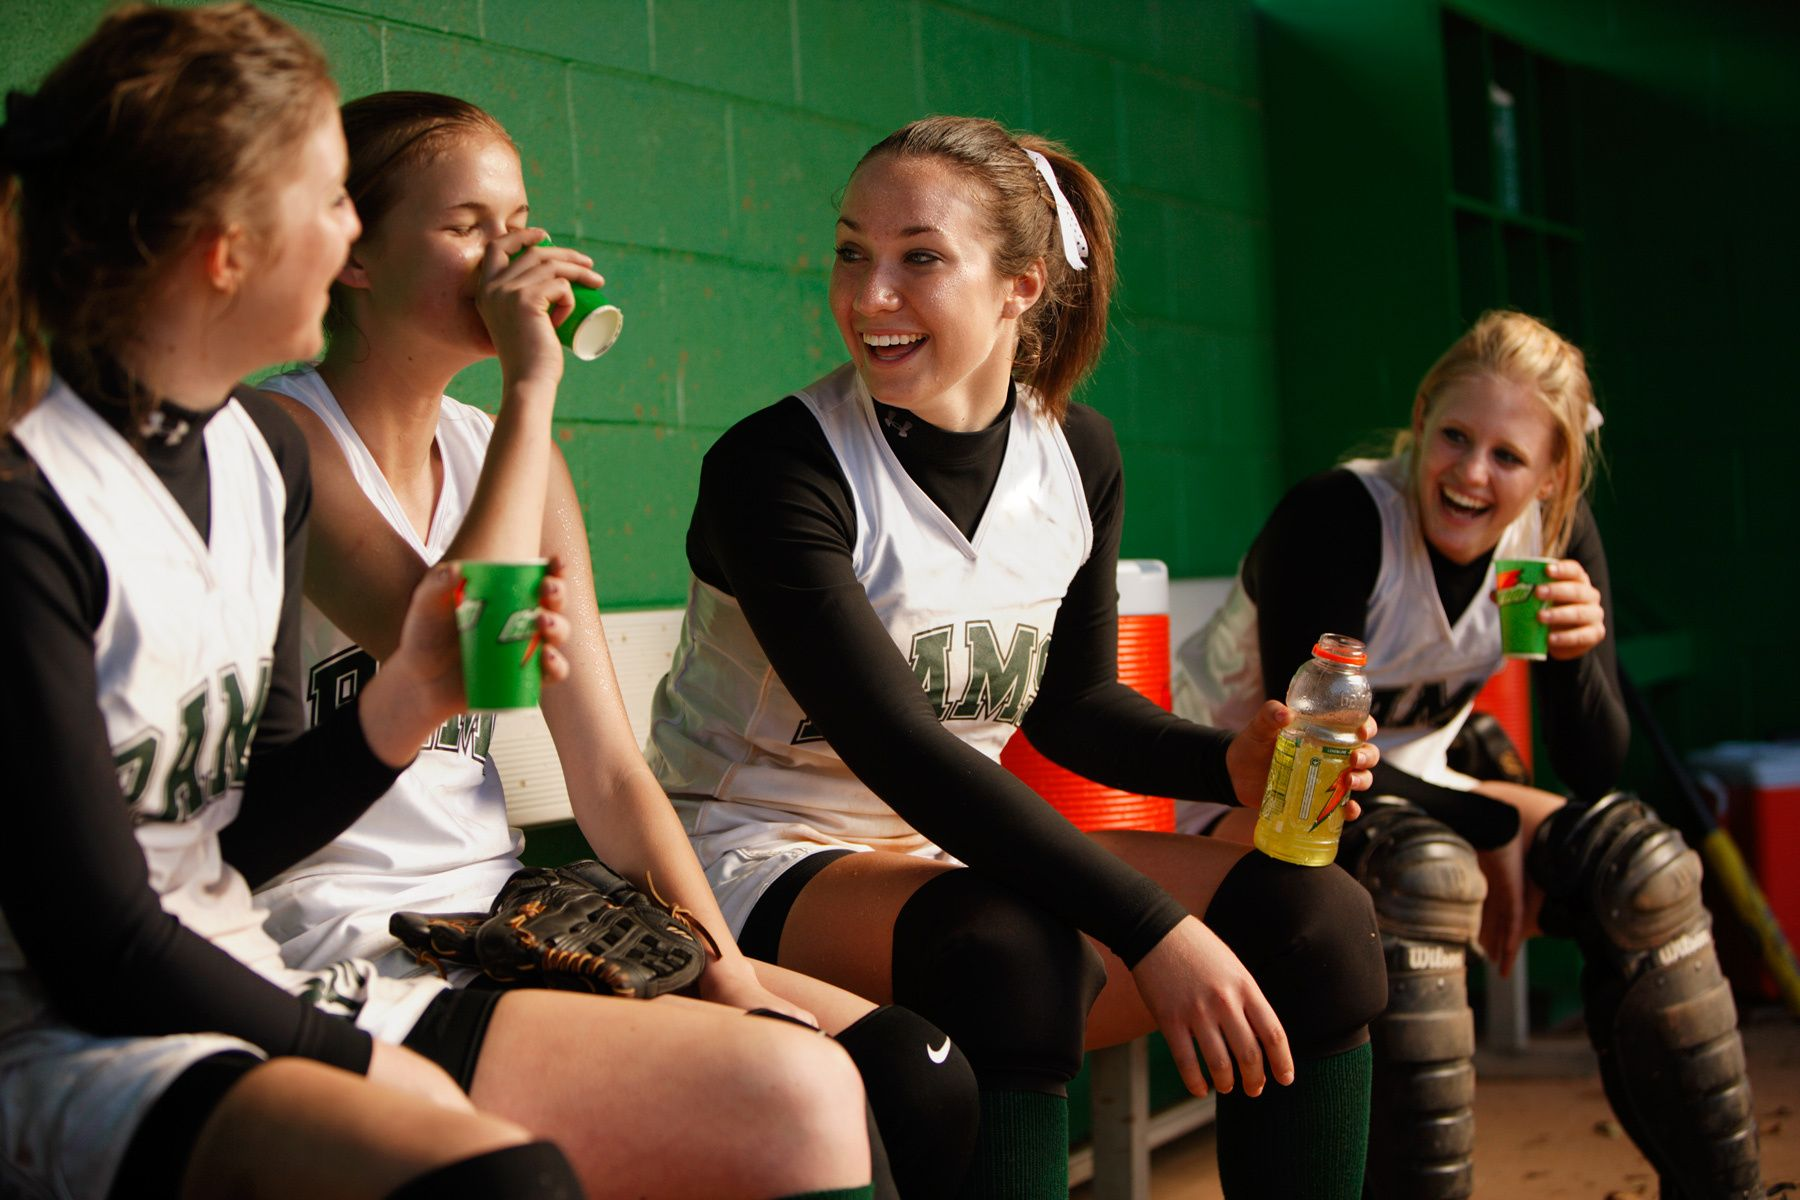 Girls Softball dugout drinking gatorade